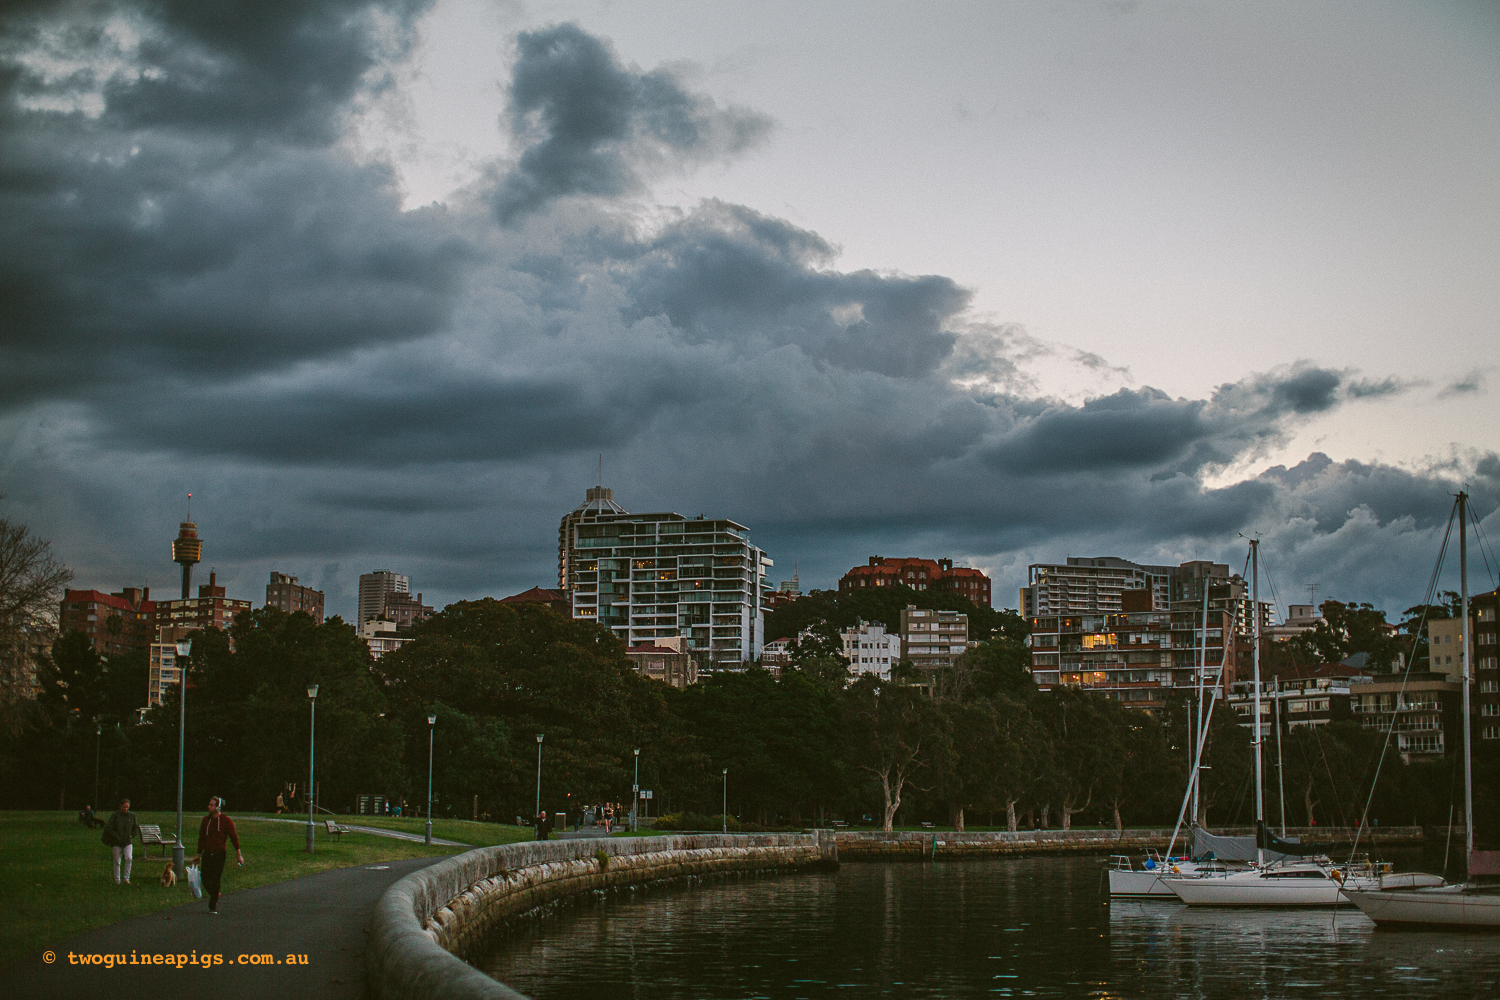 twoguineapigs_rushcutters_bay_winter_sunset_landscapes_1500-21.jpg